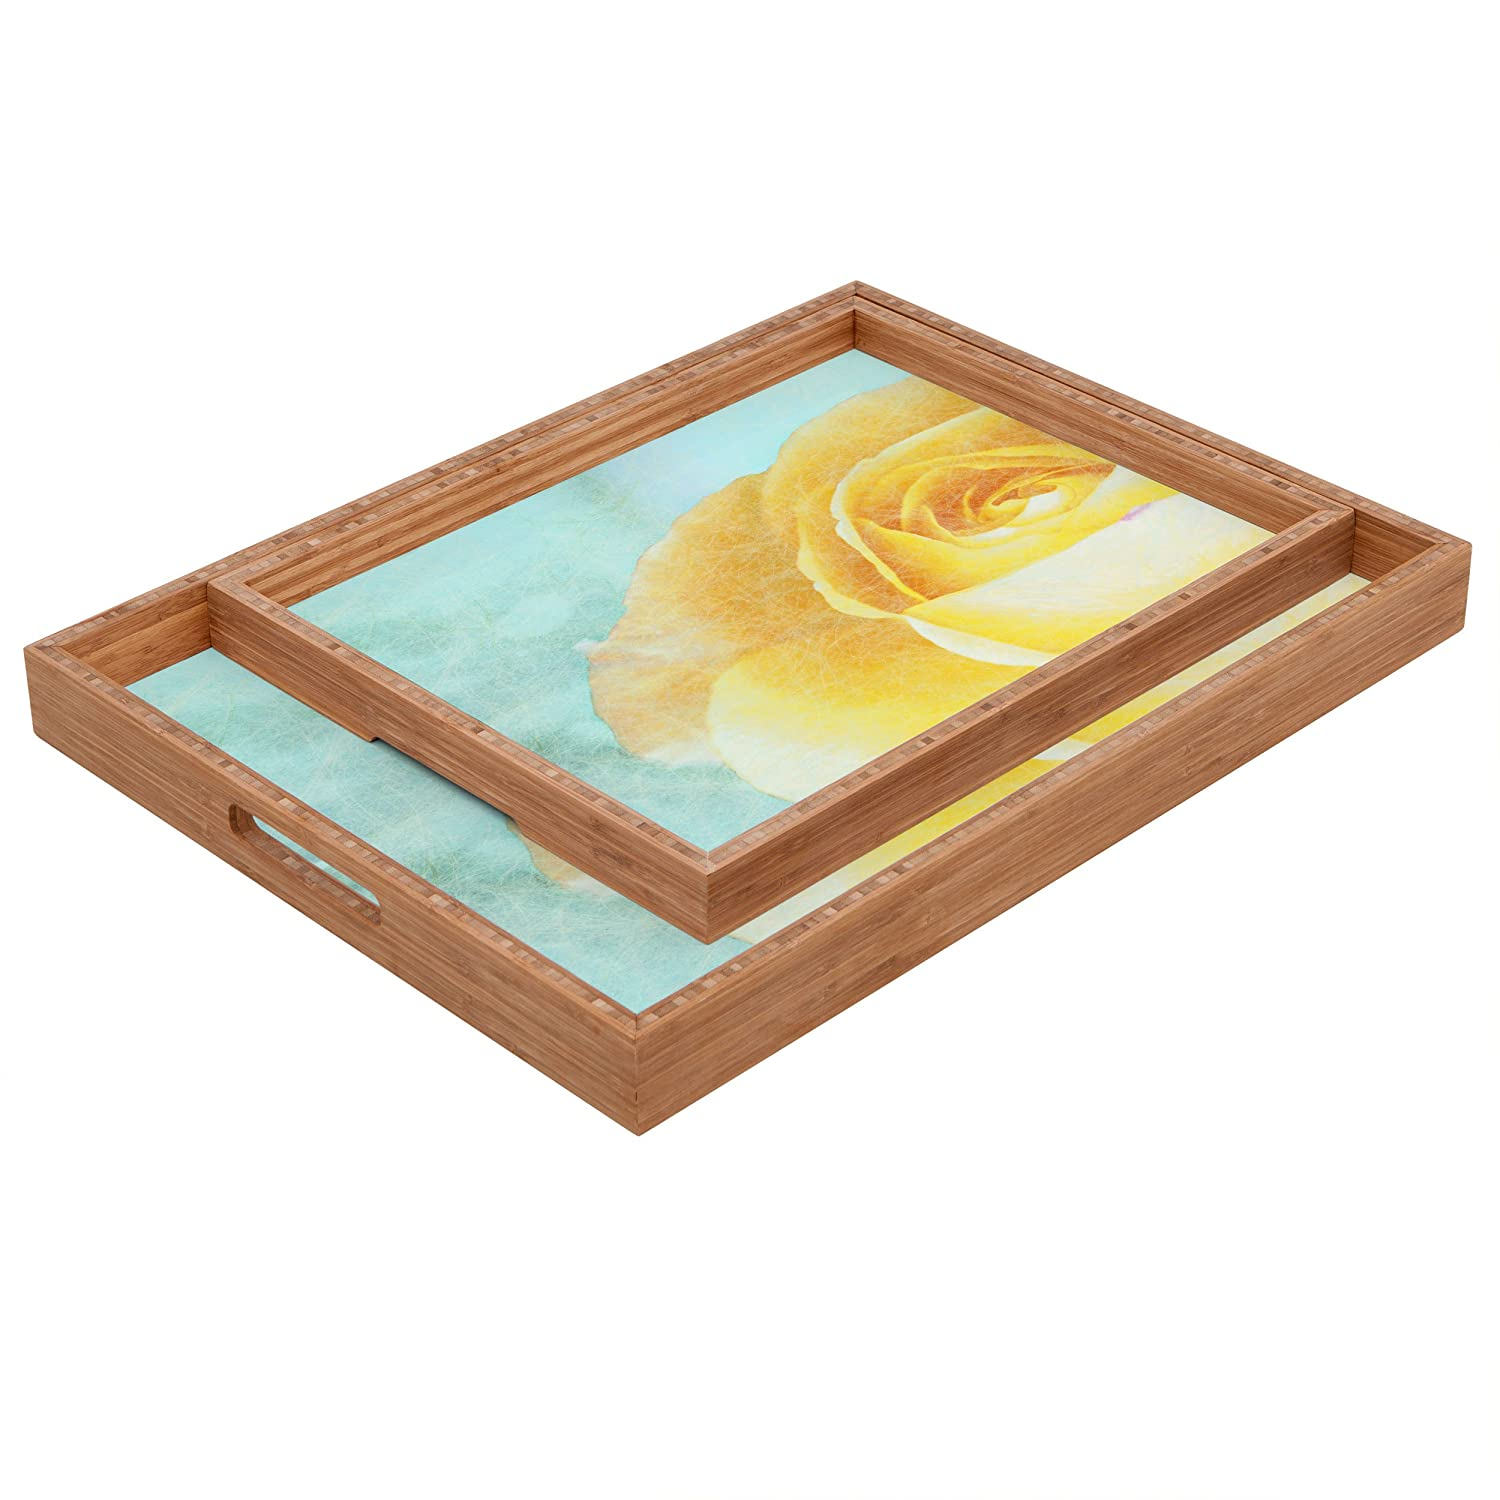 17 x 22.5 Deny Designs Jacqueline Maldonado Fever Dream Indoor//Outdoor Rectangular Tray